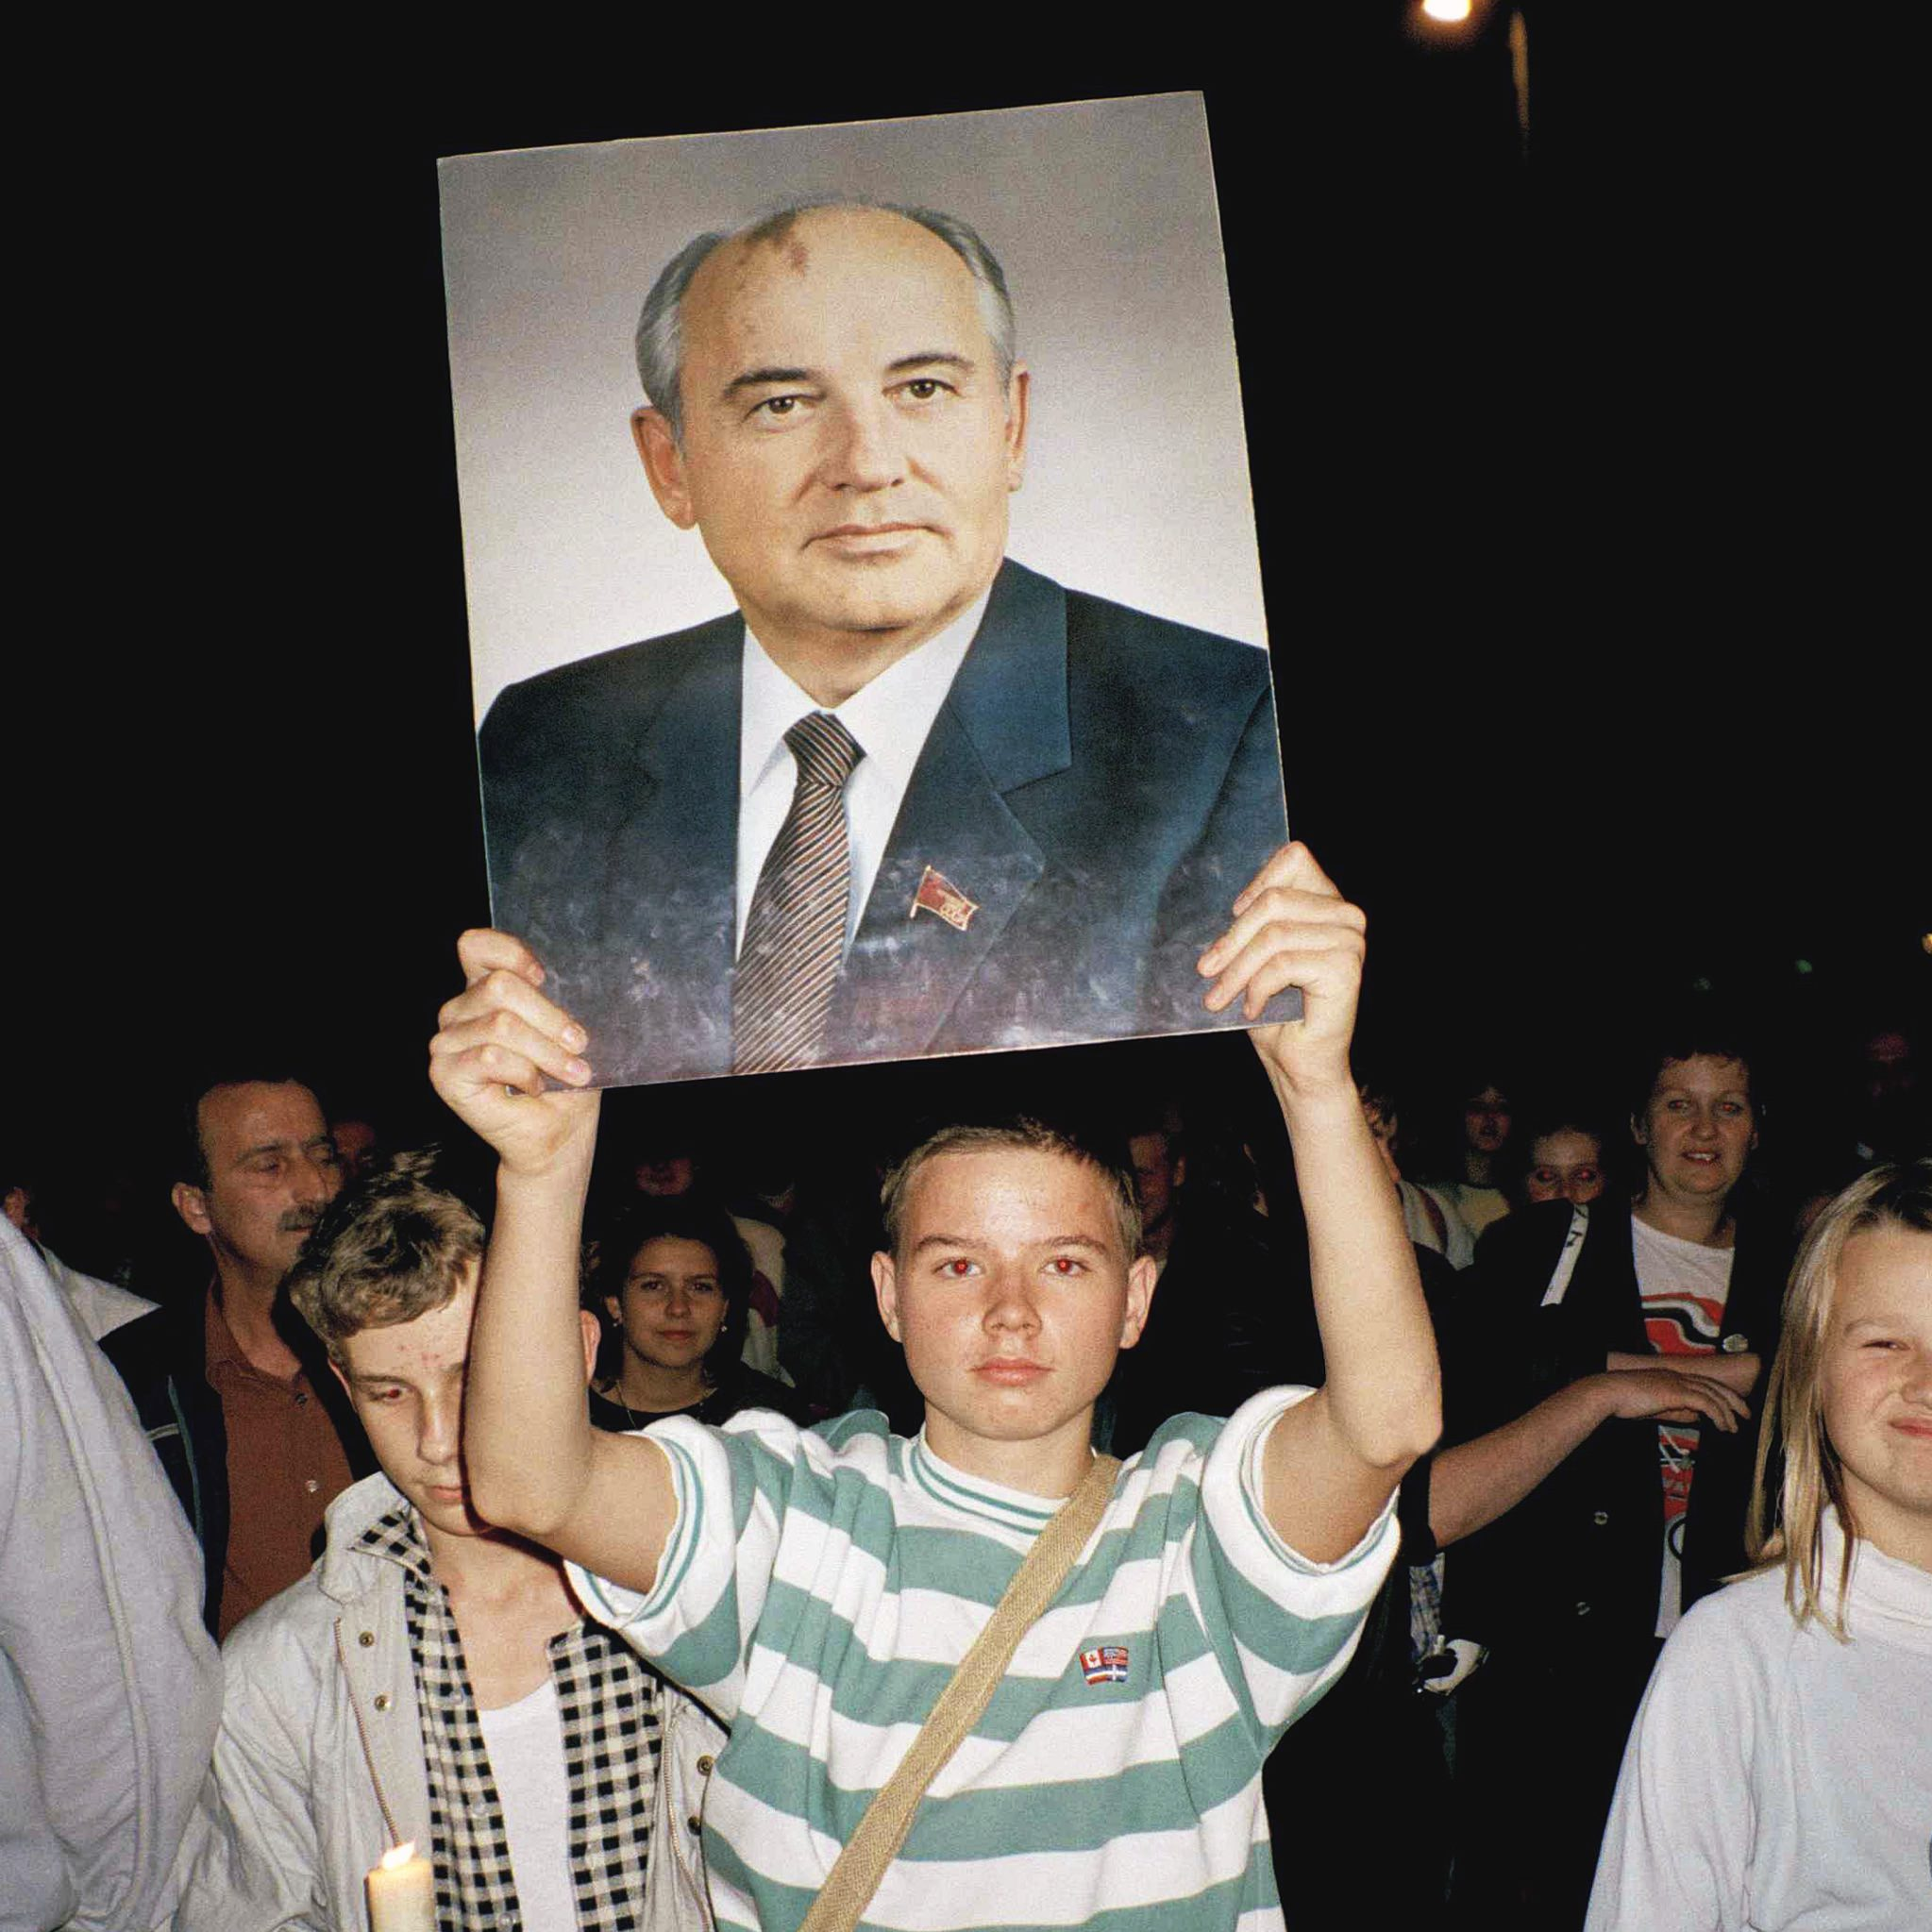 Young man holding a photo of Mikhail Gorbachev